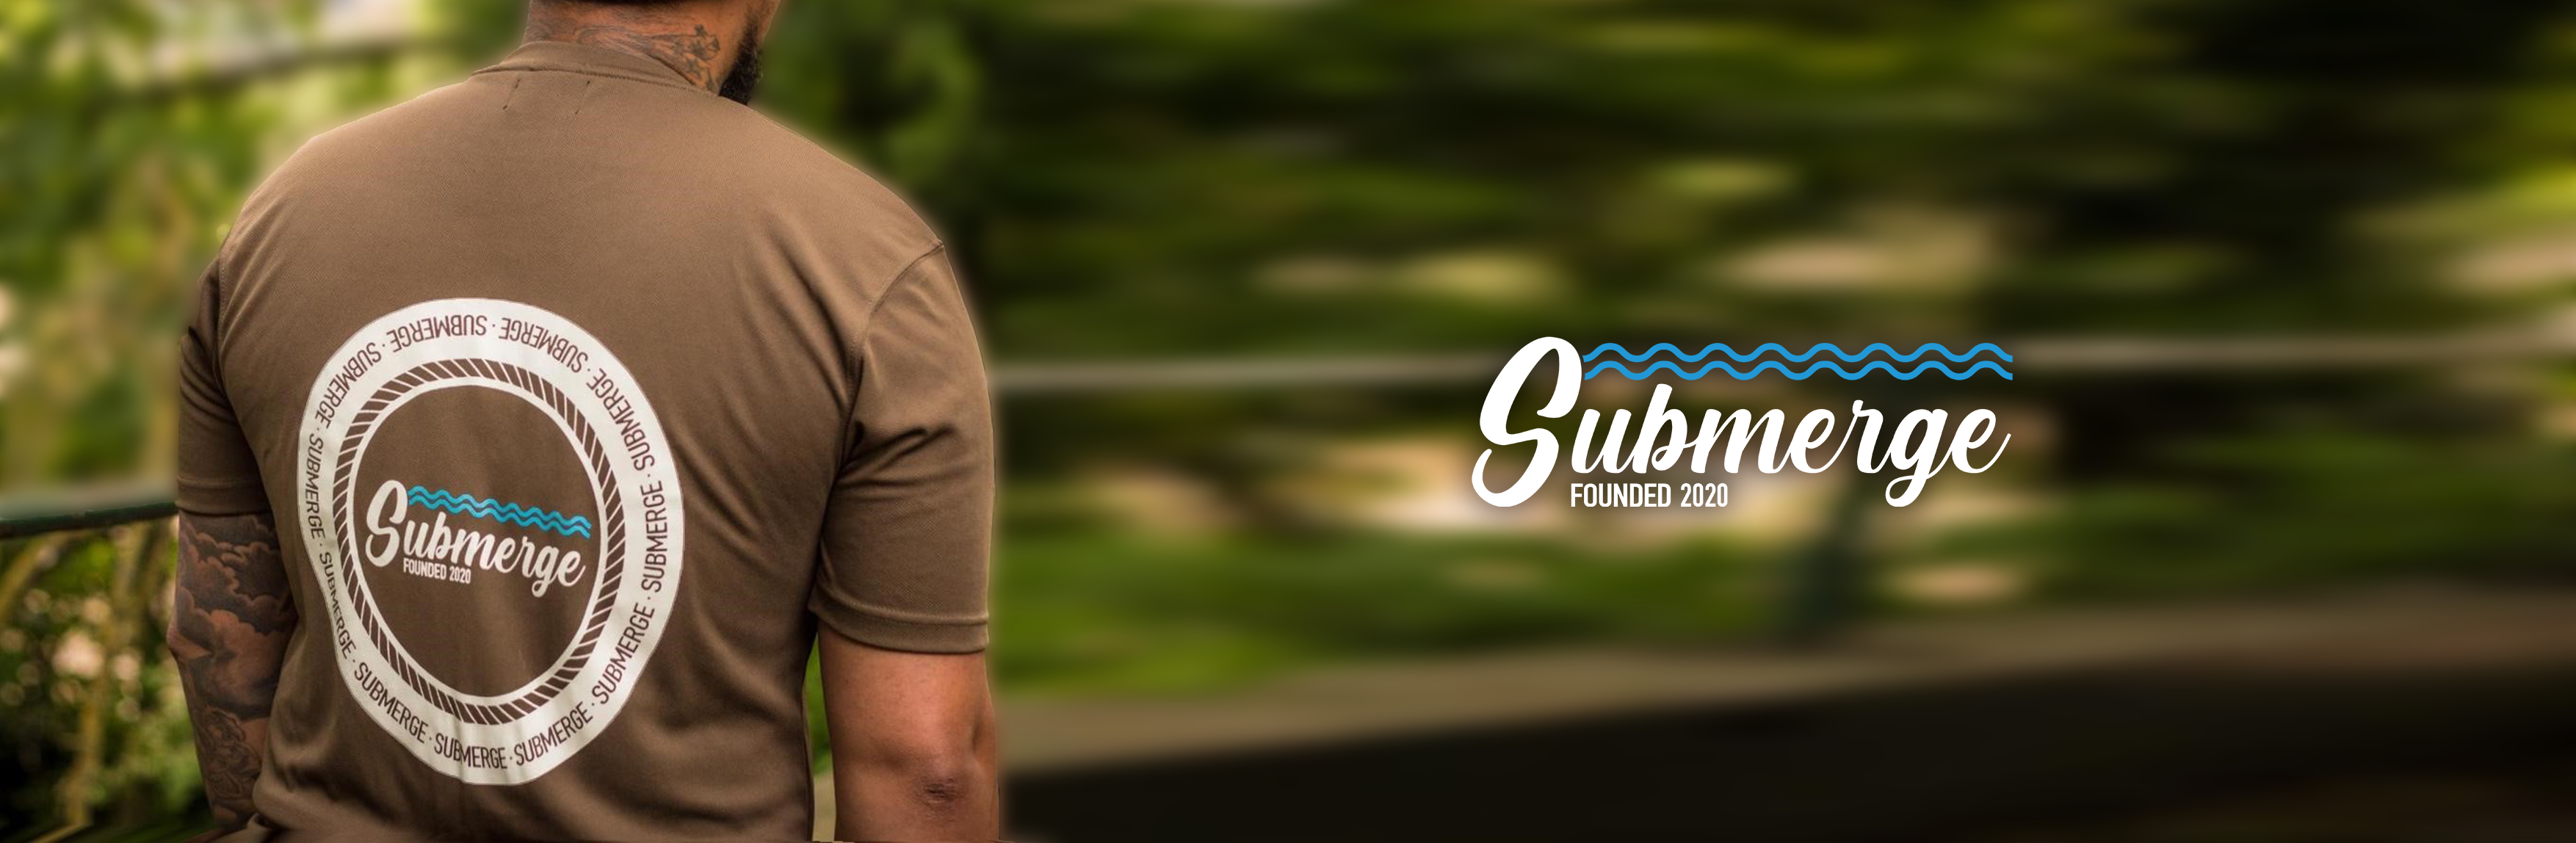 Submerge-clothing-background